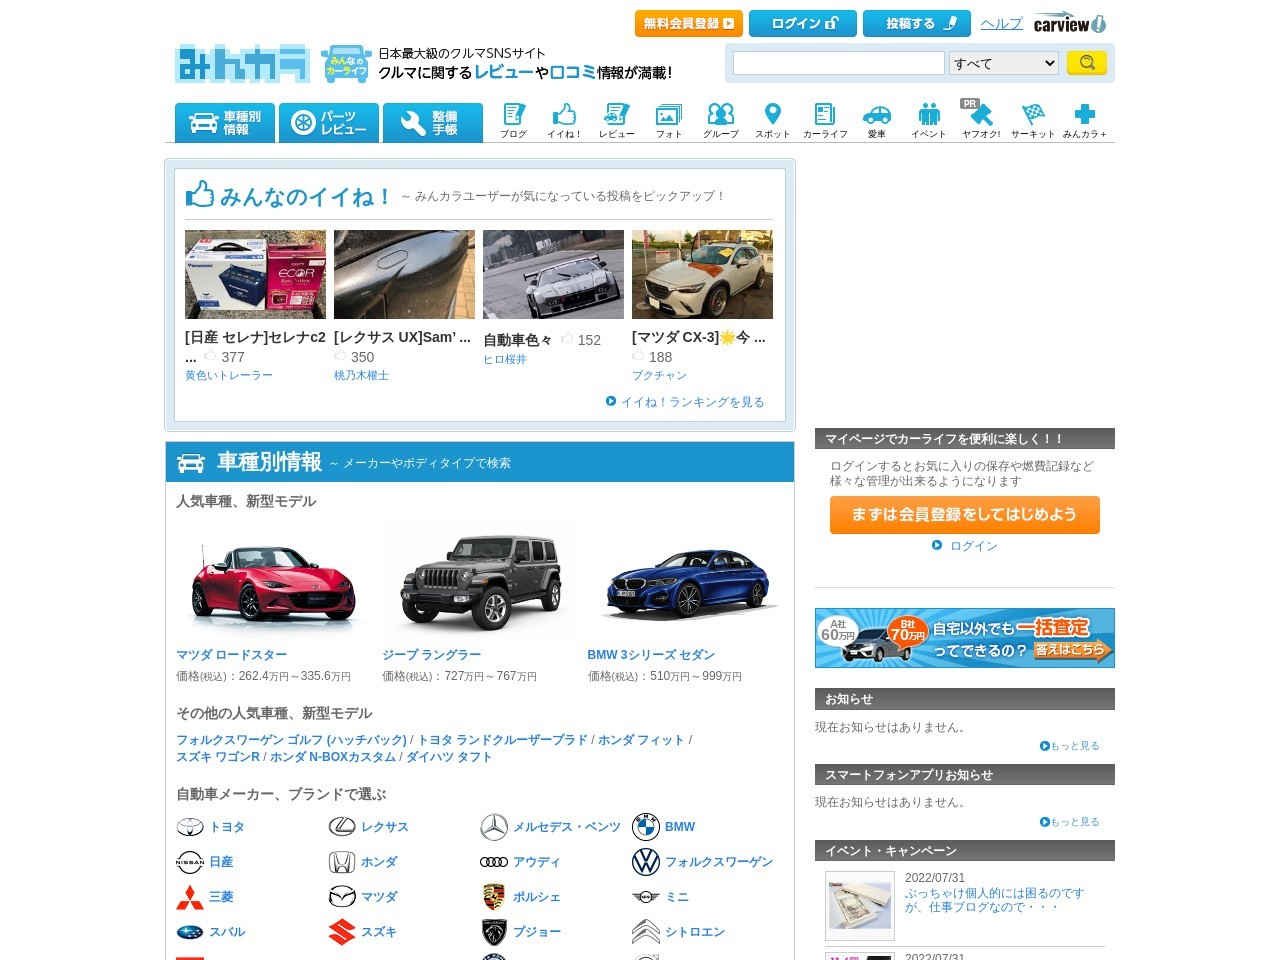 http://minkara.carview.co.jp/userid/1623582/car/1319515/5177255/parts.aspx